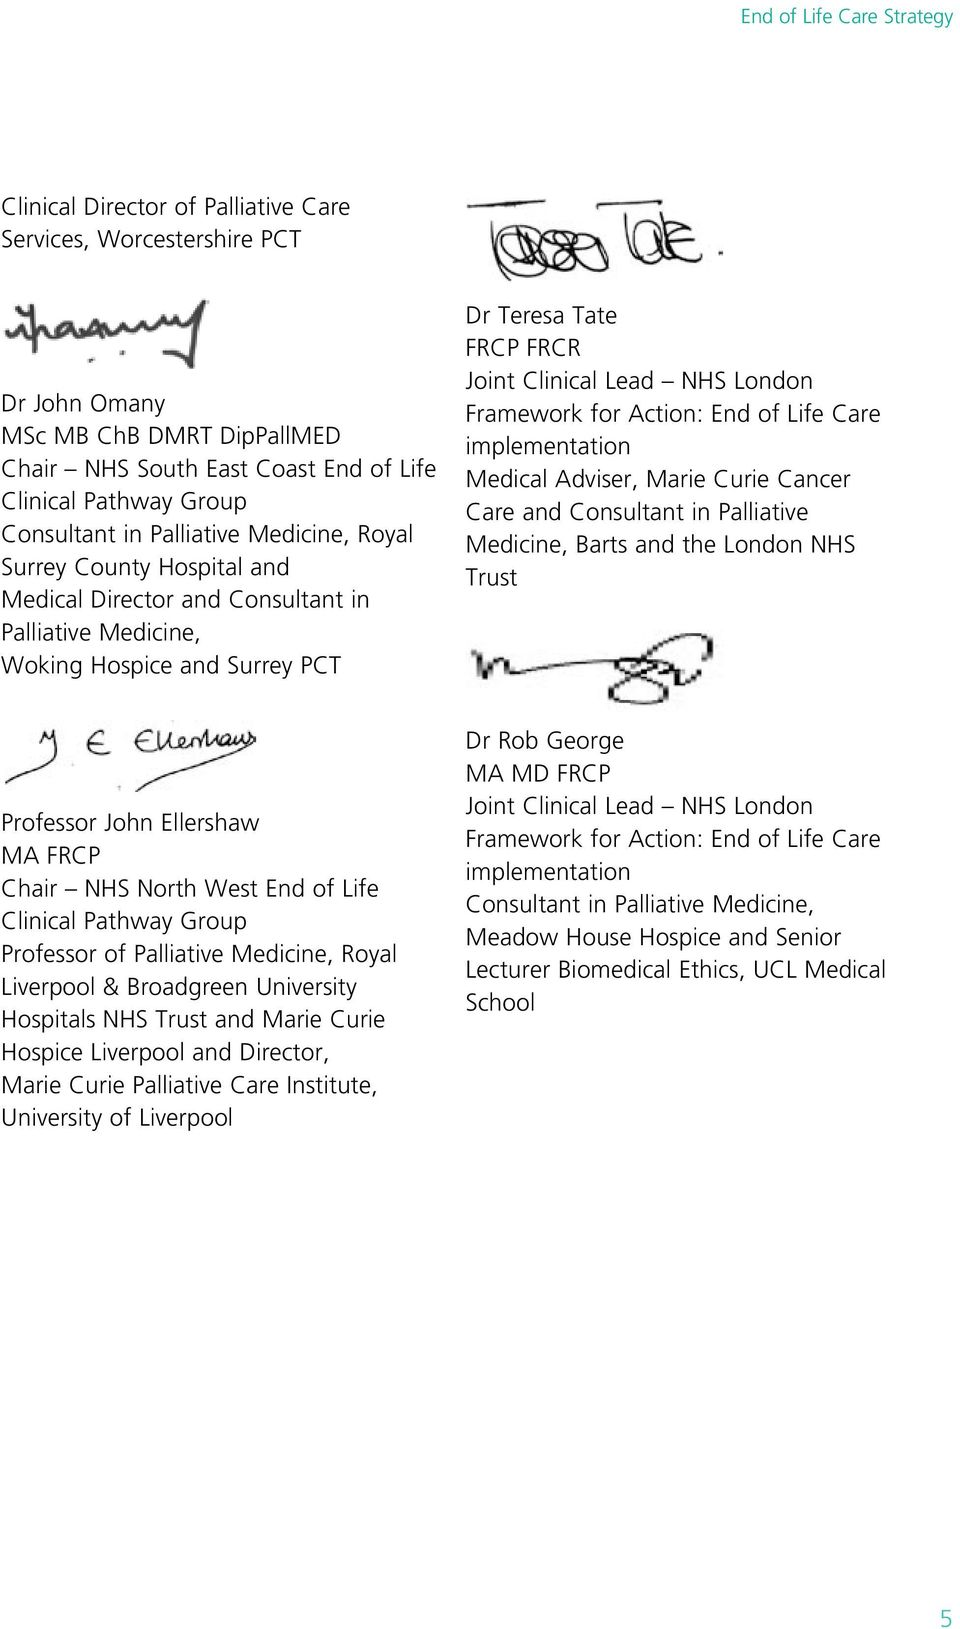 Action: End of Life Care implementation Medical Adviser, Marie Curie Cancer Care and Consultant in Palliative Medicine, Barts and the London NHS Trust Professor John Ellershaw MA FRCP Chair NHS North